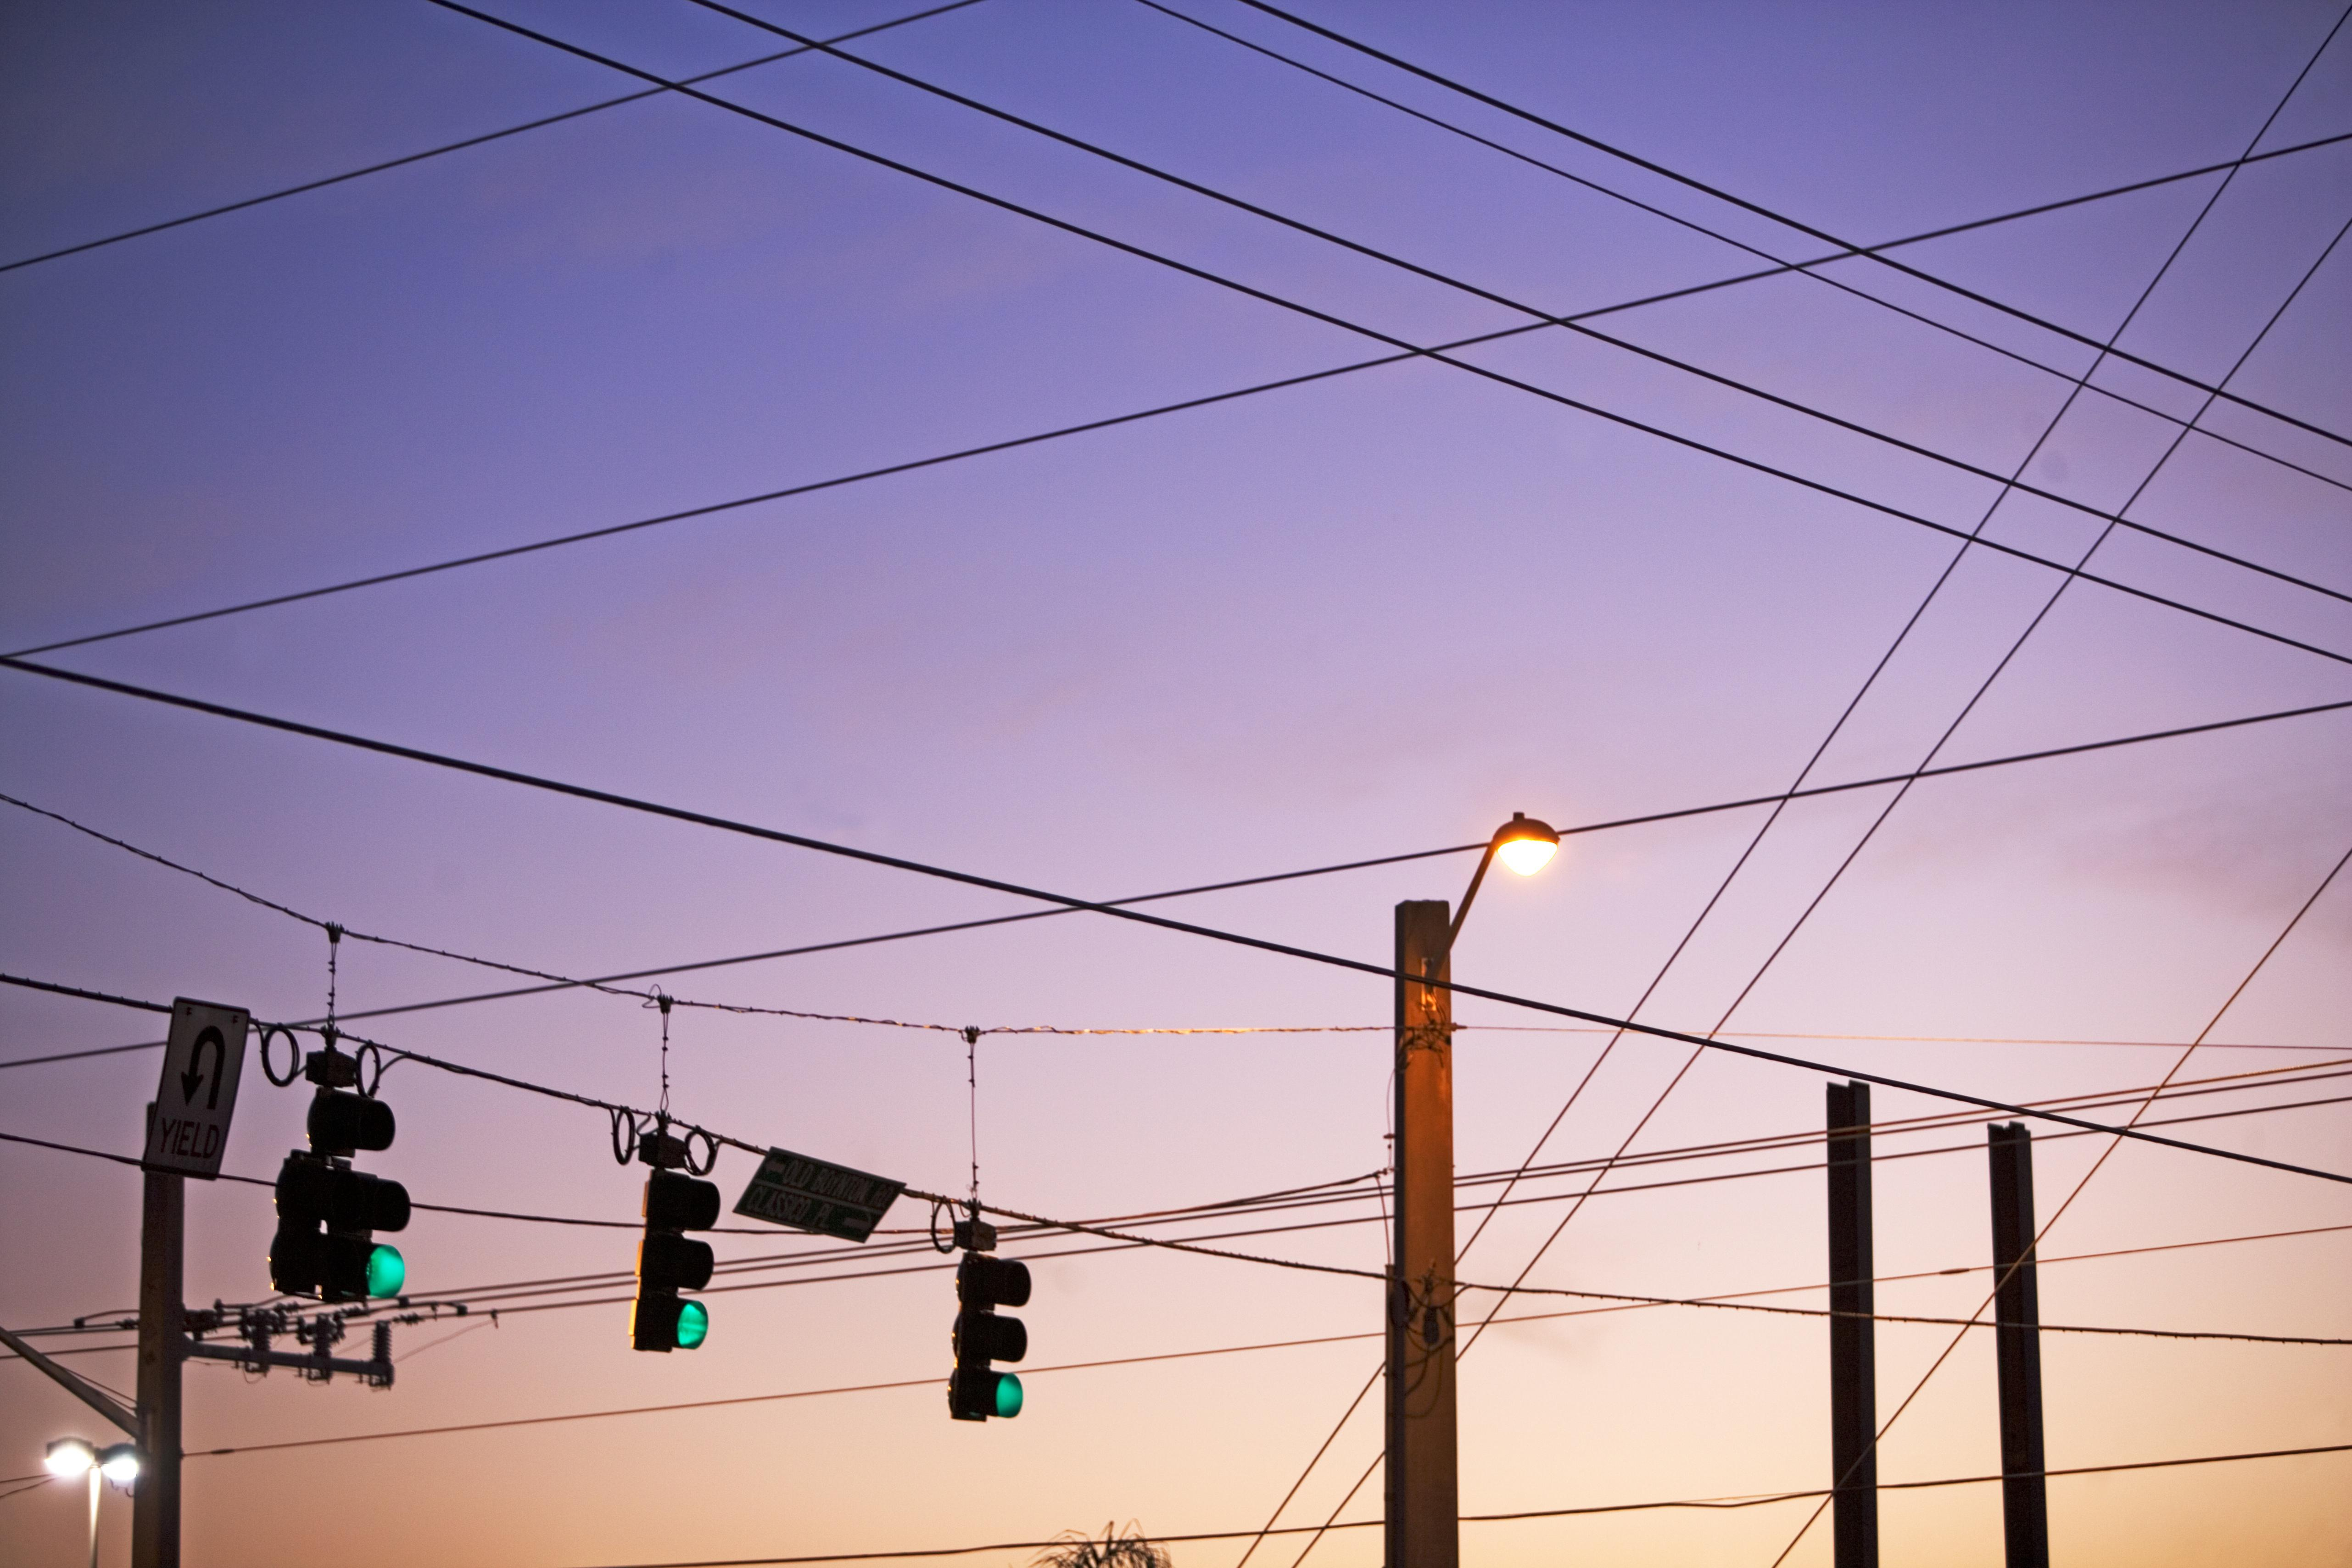 Electrical wires and traffic lights